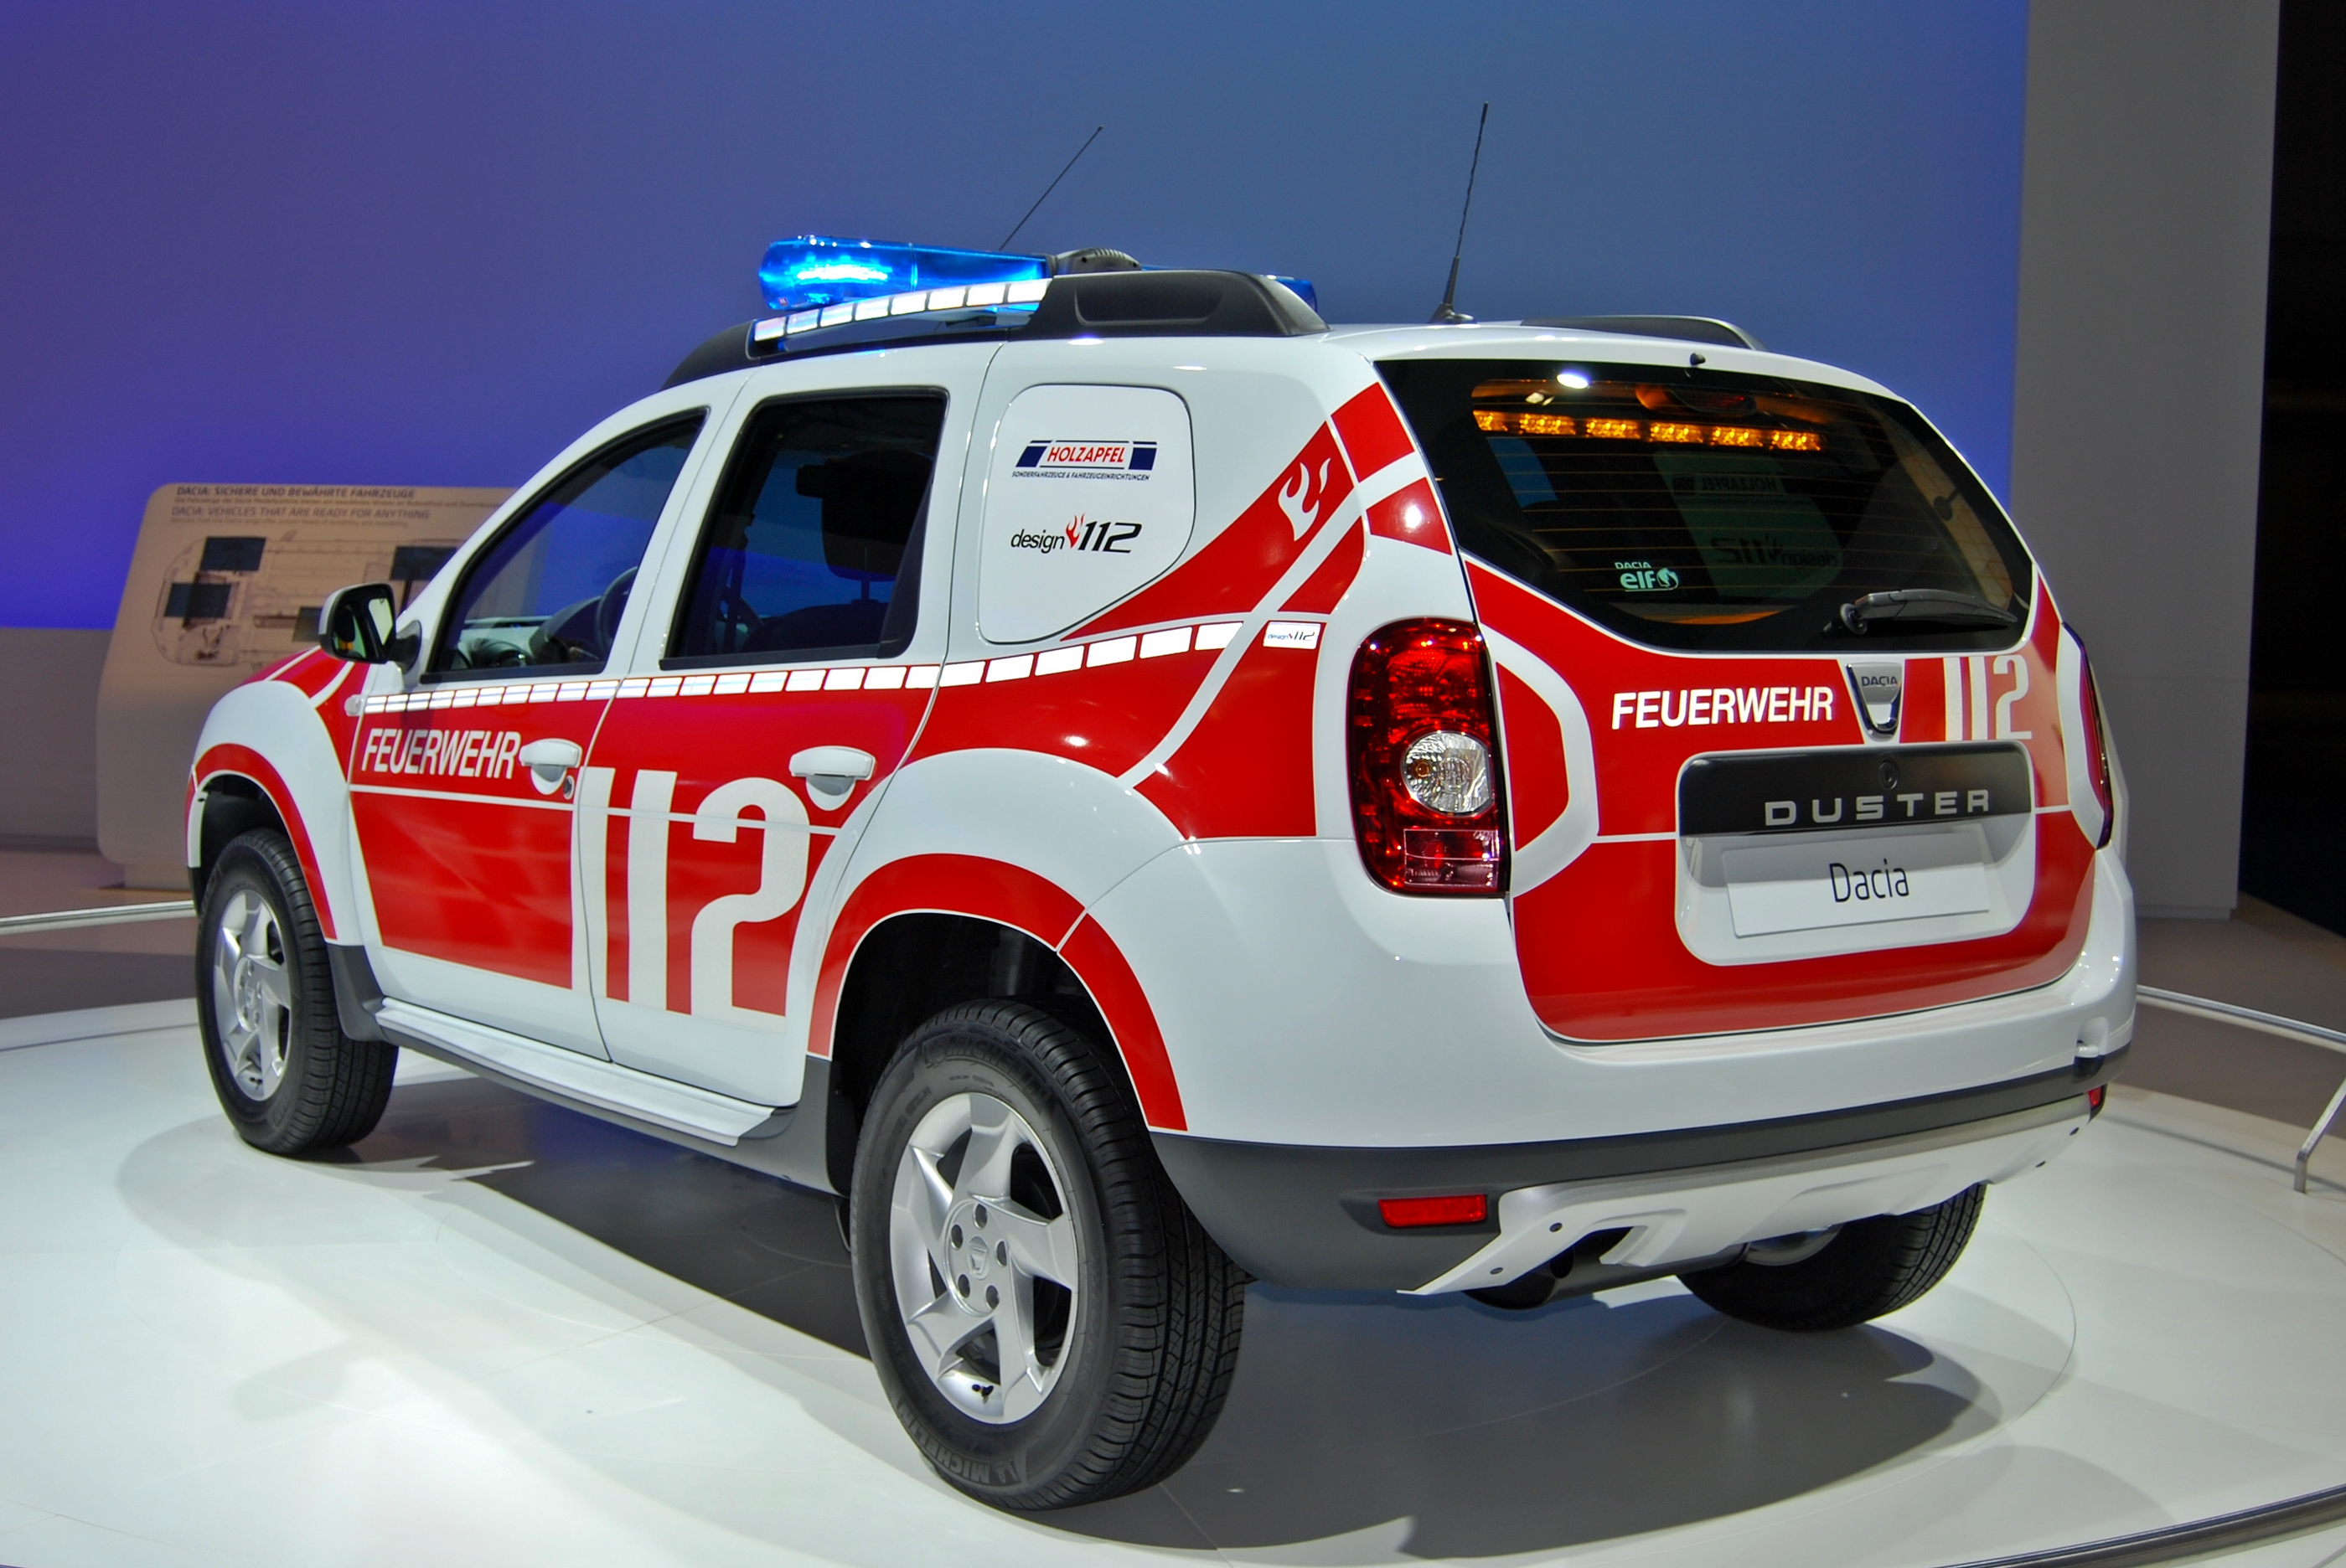 datei dacia duster feuerwehr iaa 2011 jpg wikipedia. Black Bedroom Furniture Sets. Home Design Ideas